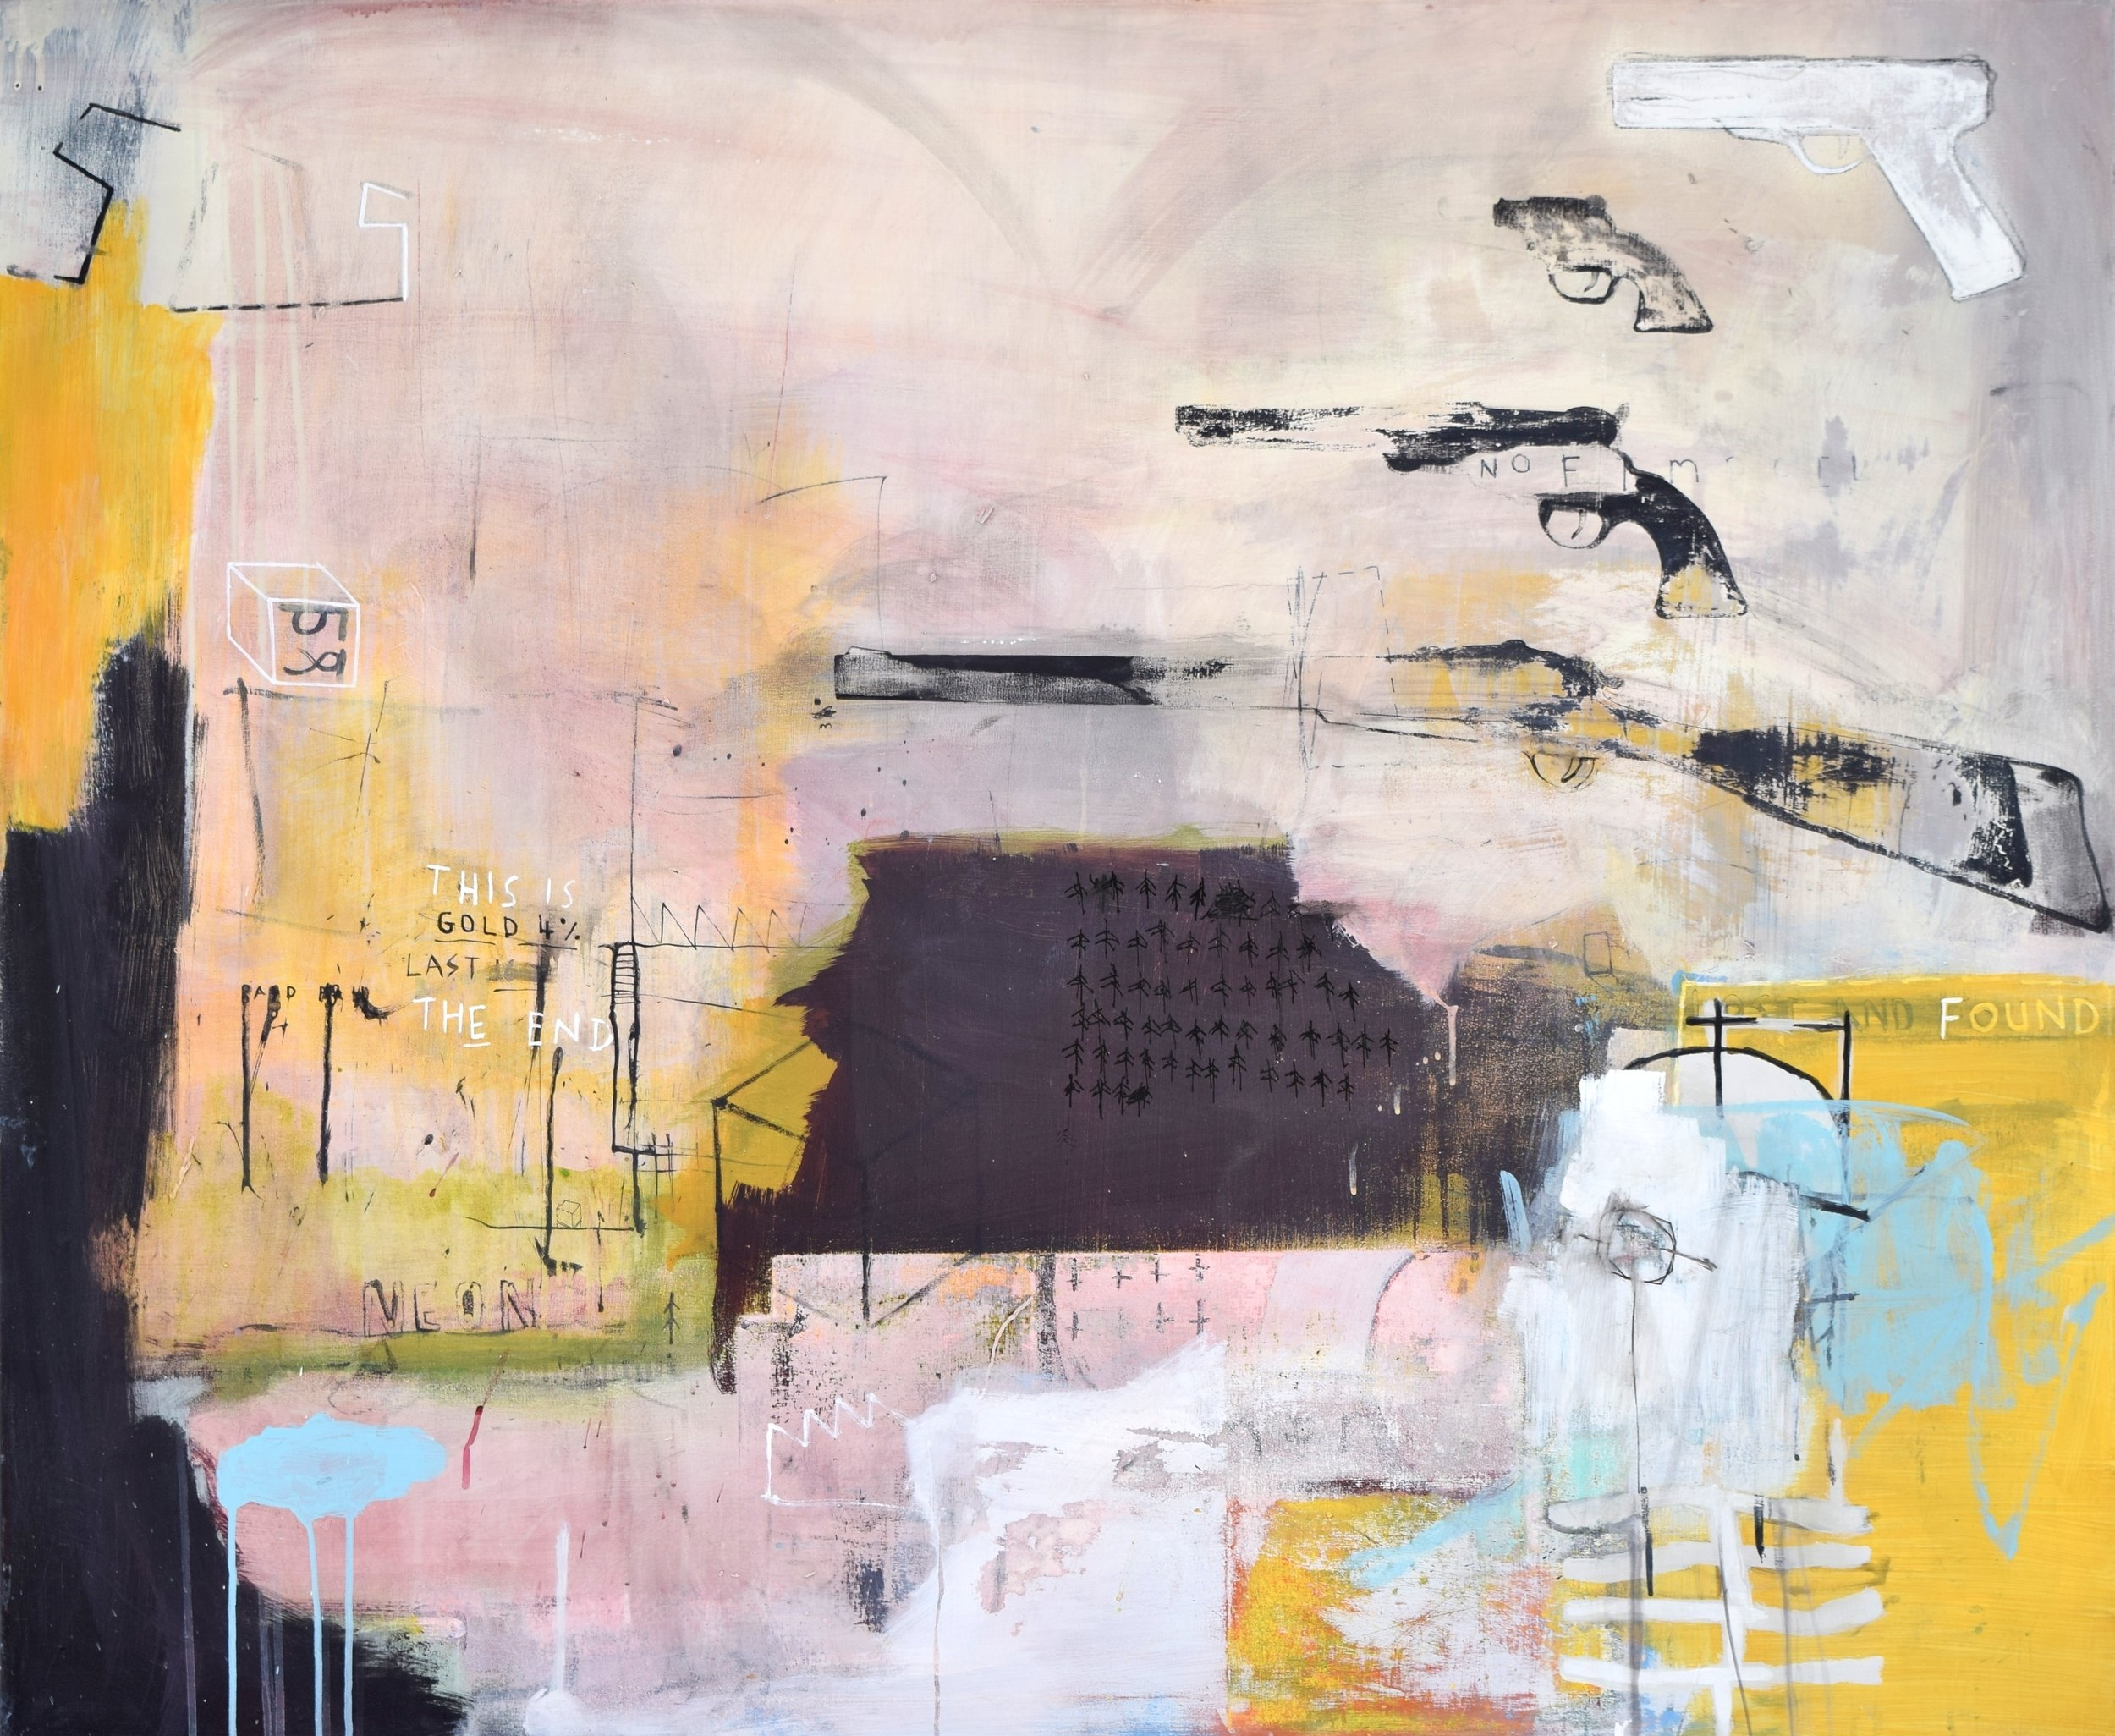 'CATCH 22' 2015    Spray paint, ink and acrylic paint on canvas 100 x 120 x 4.5 cm